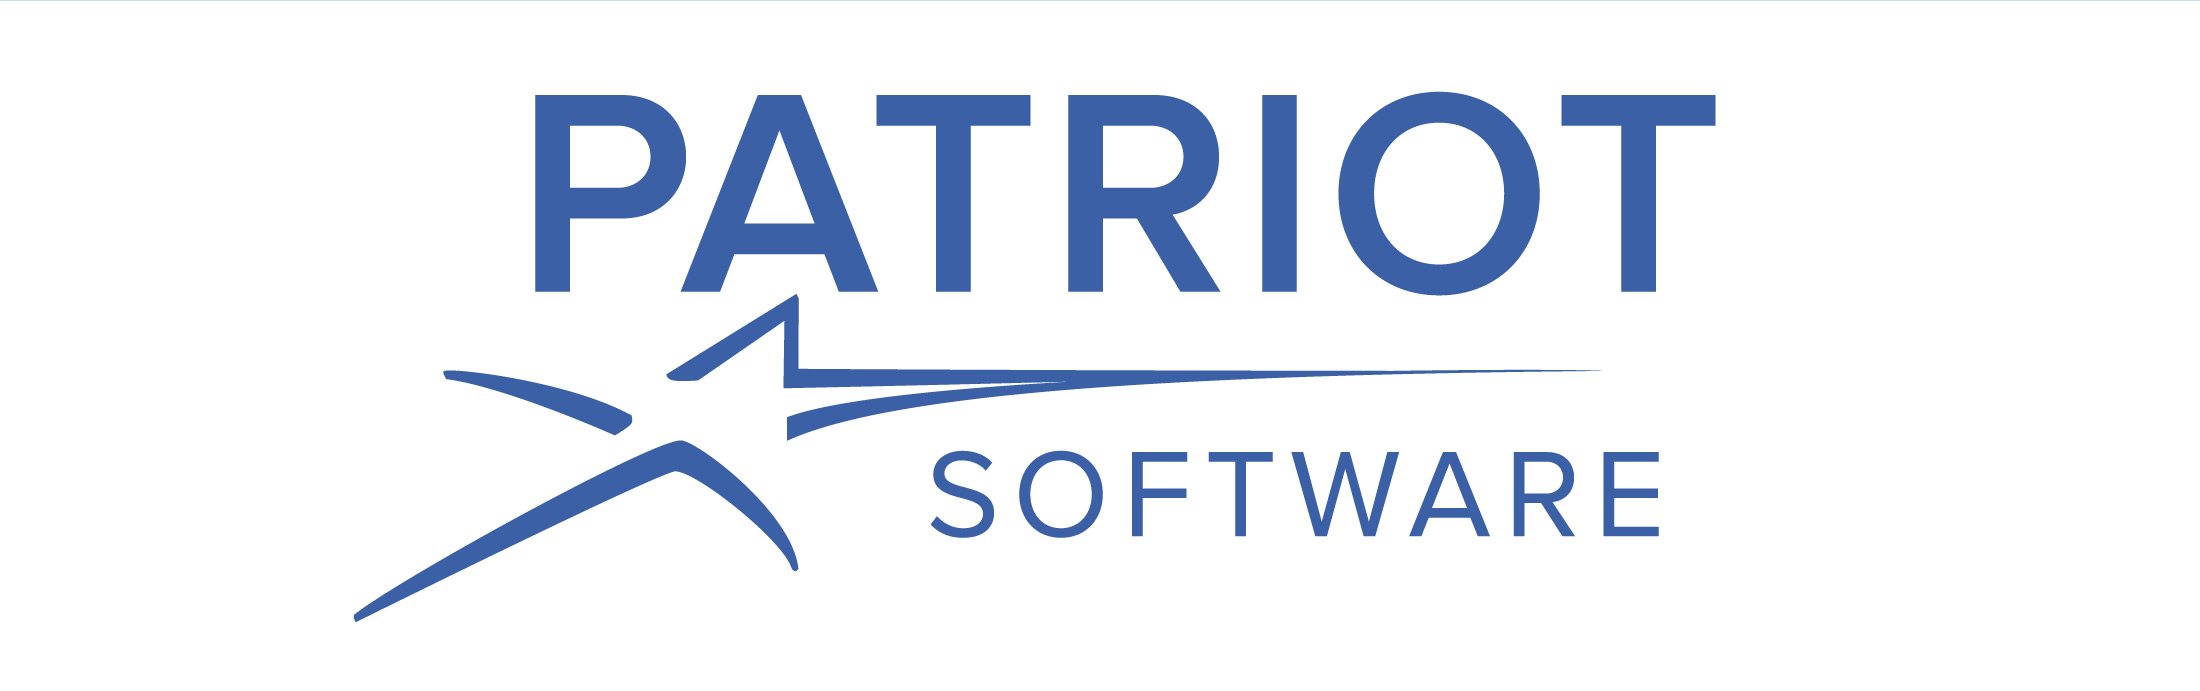 Patriot Software Partners With Summit Consortia Management, Inc.